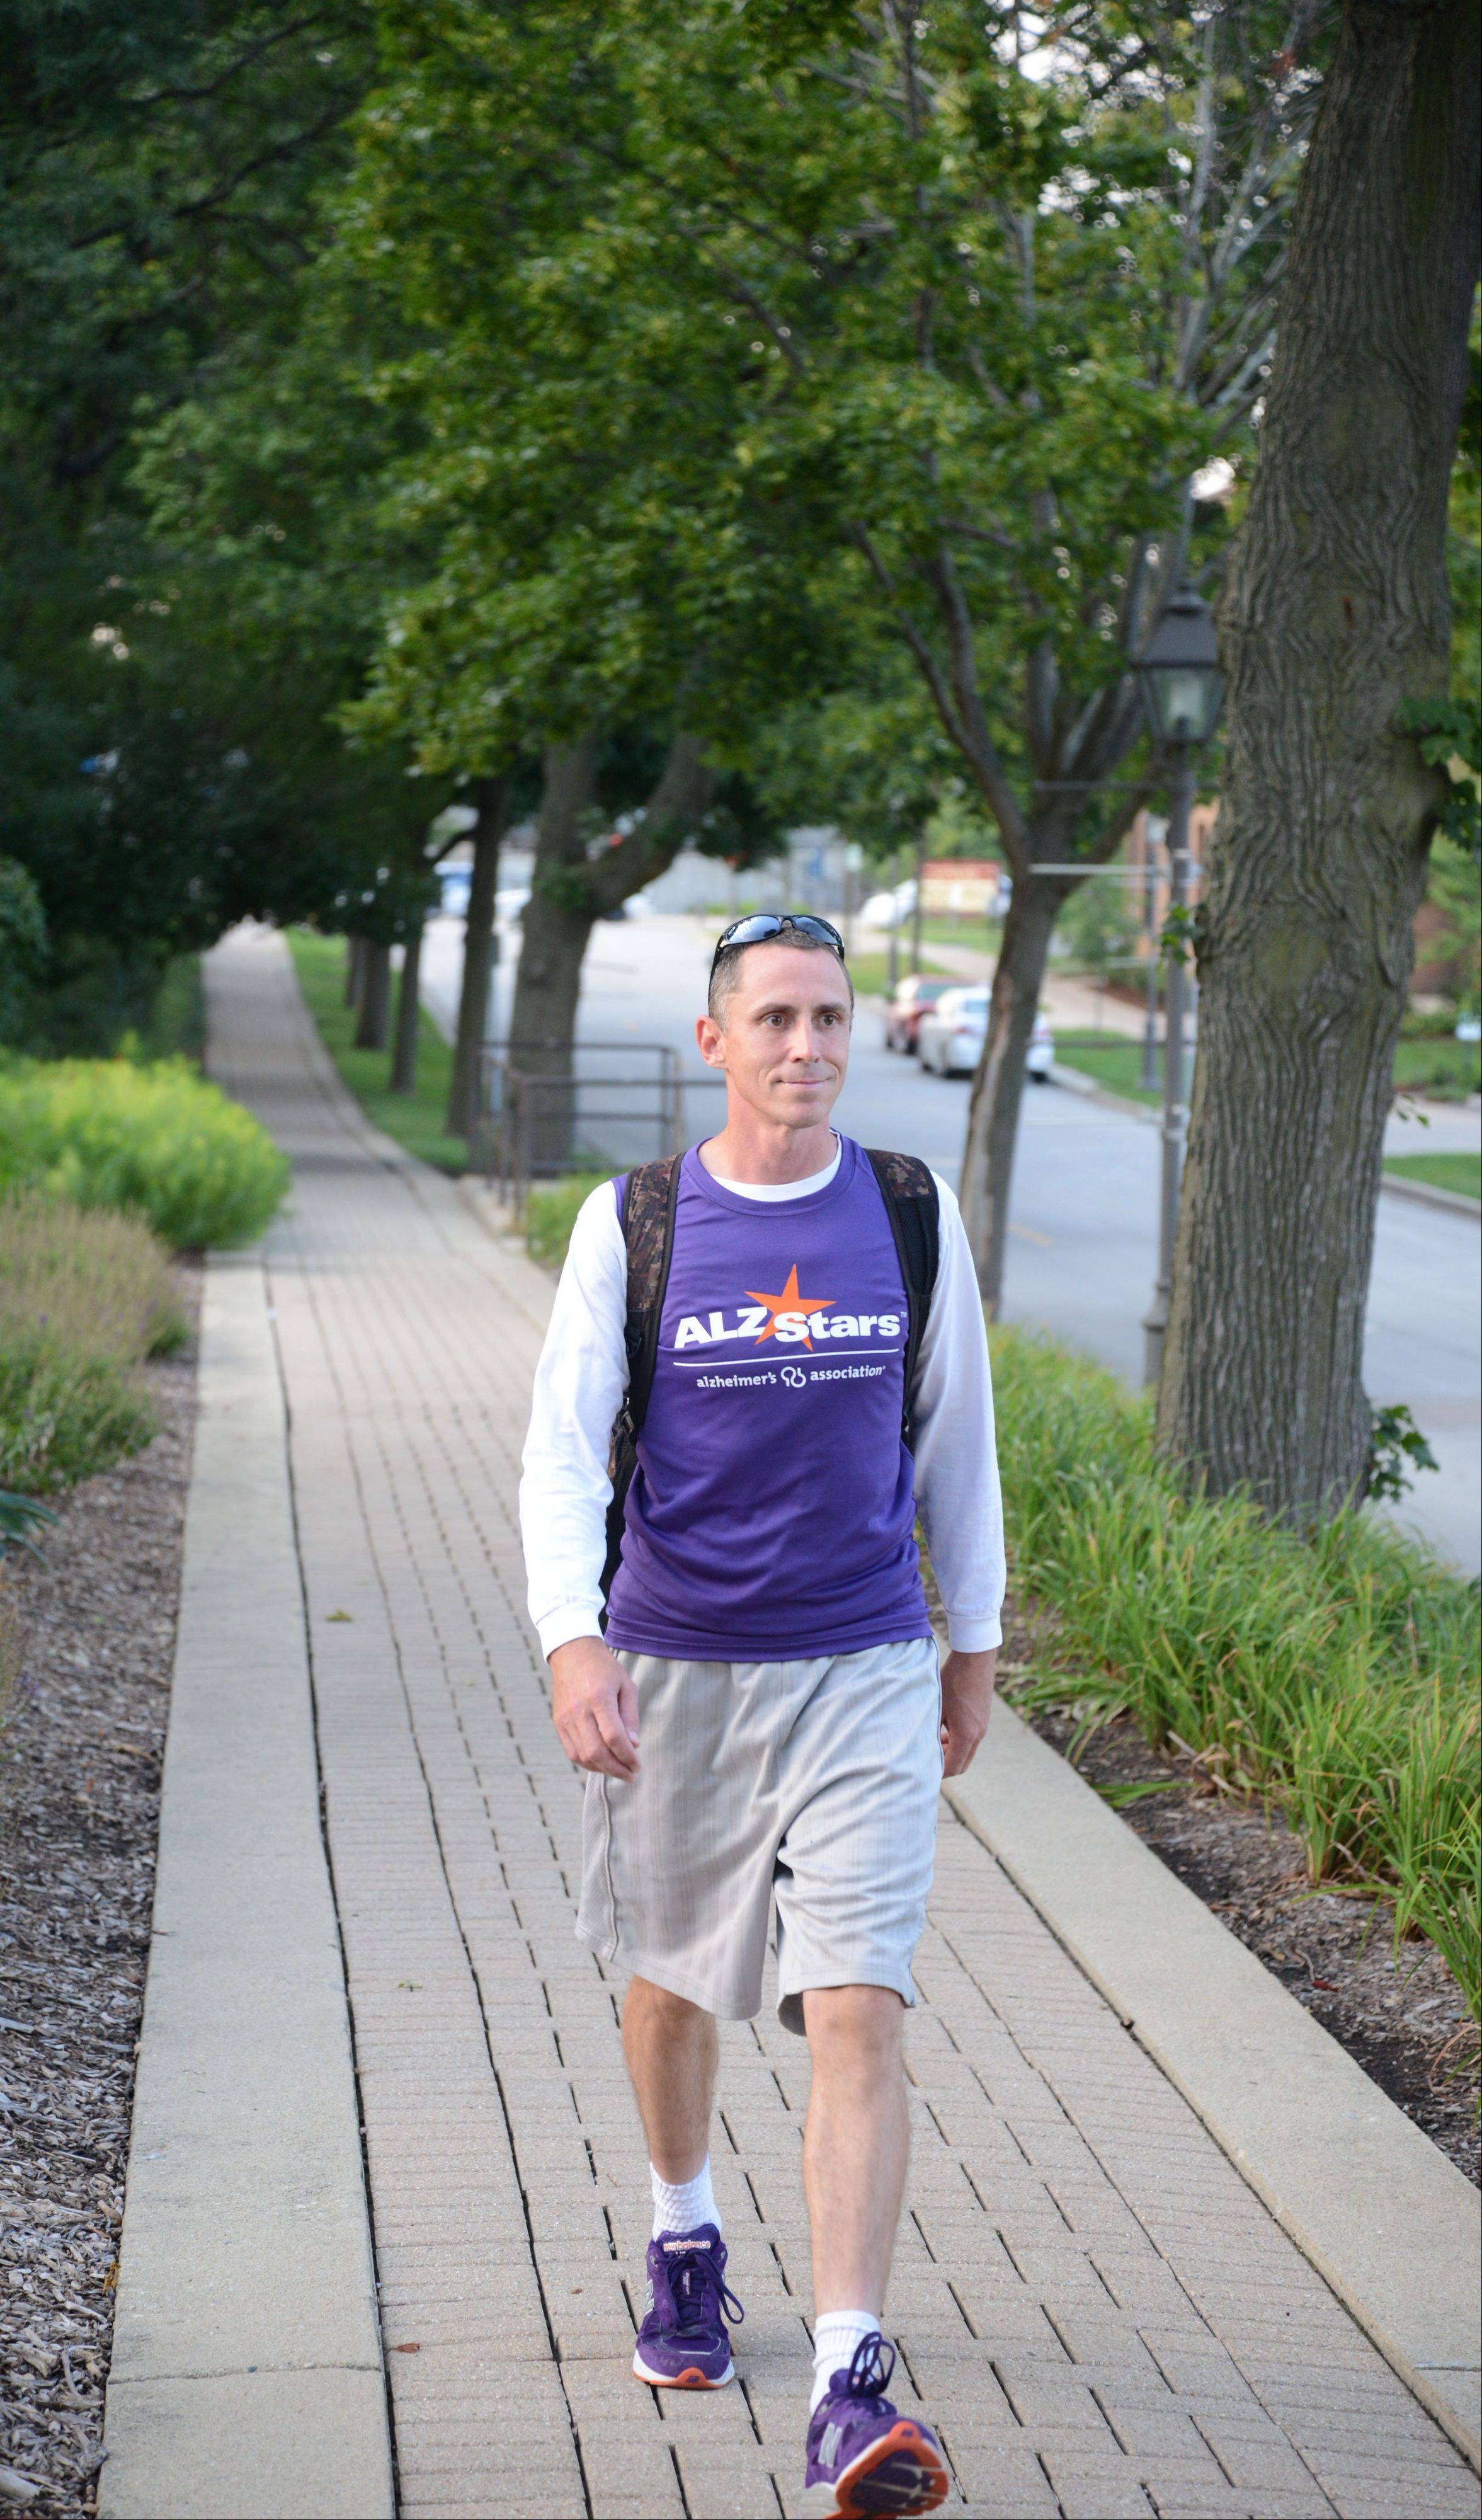 Lombard man to walk 750 miles for Alzheimer's cause